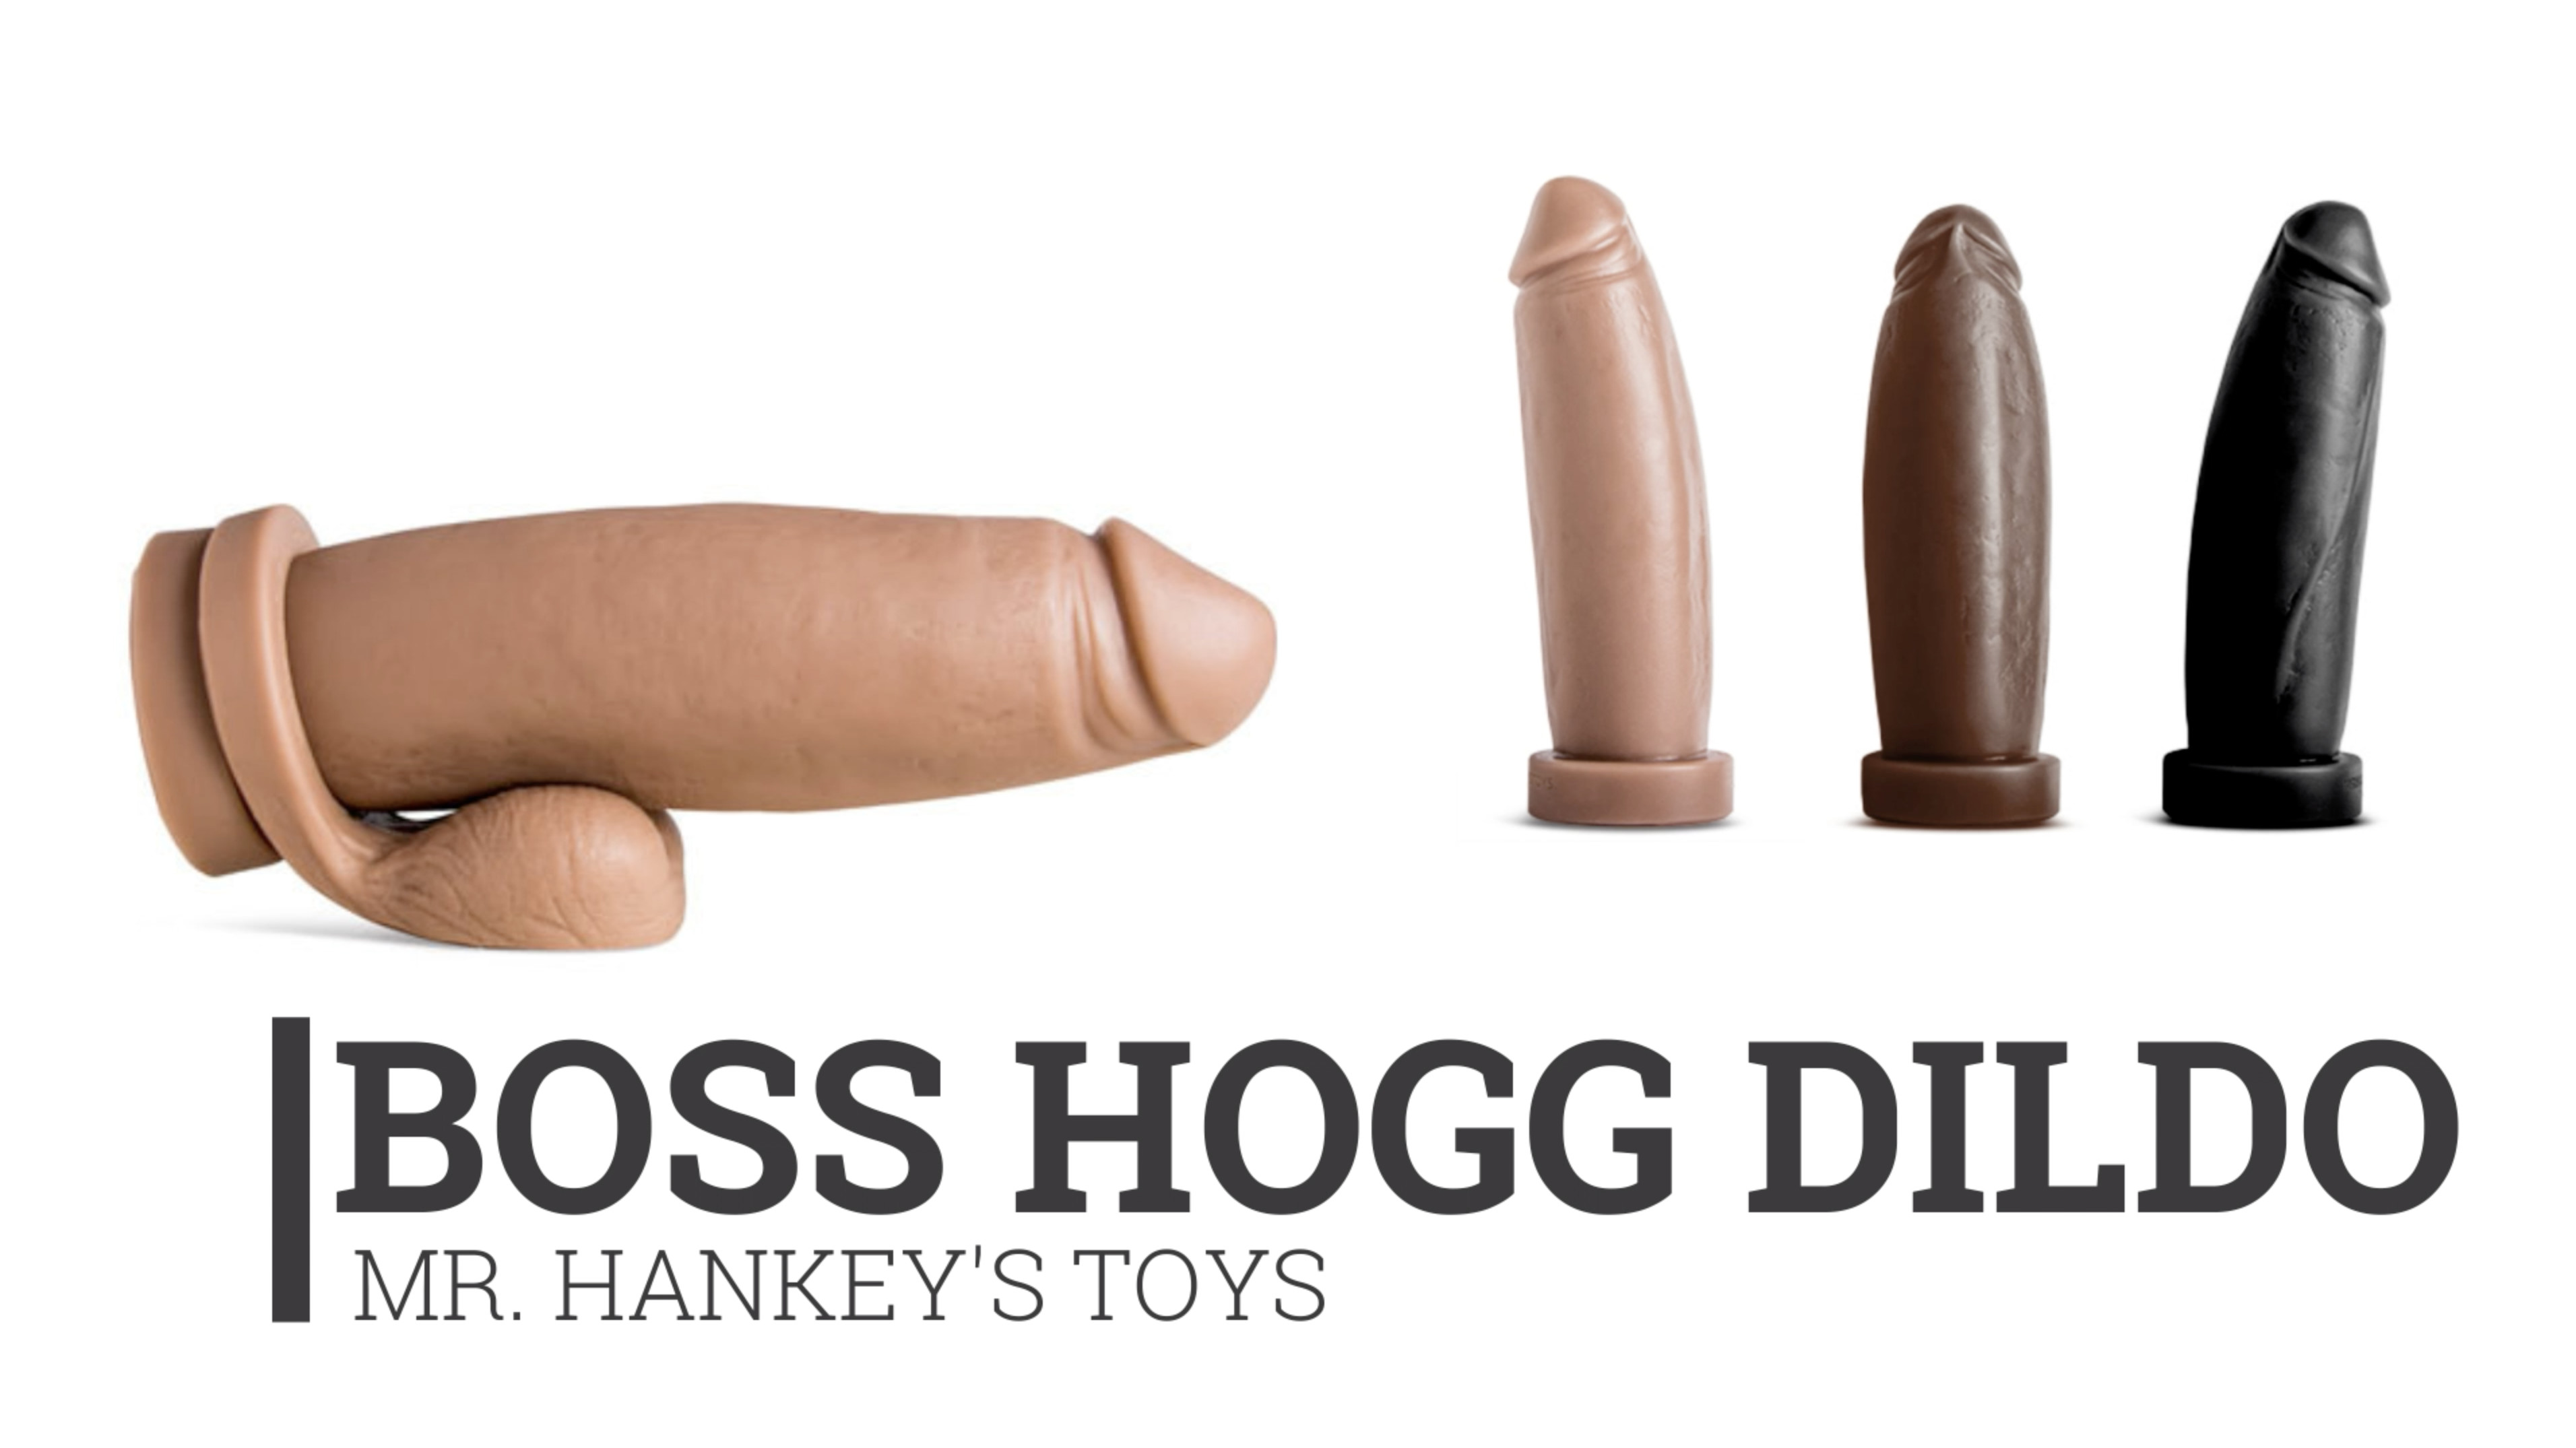 How to choose right size Mr. Hankey's the Boss Hogg dildo - Try us New online Tools which lets you specify the right size for you